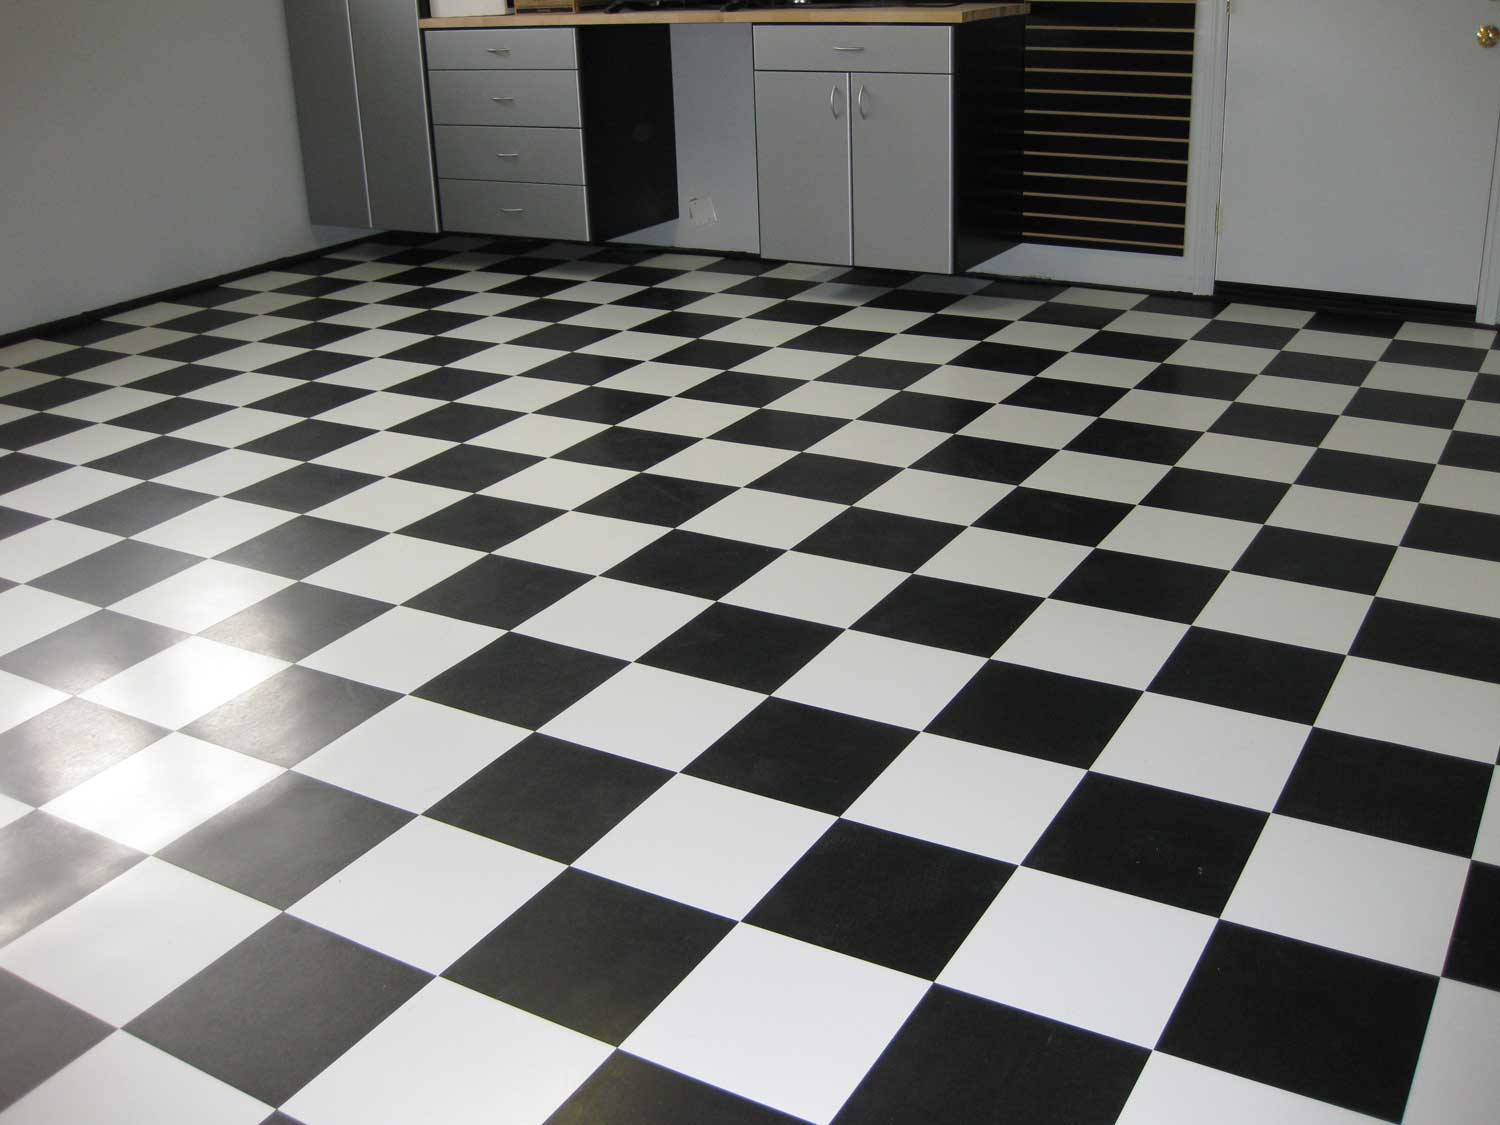 VCT Black and White Home Tile Flooring